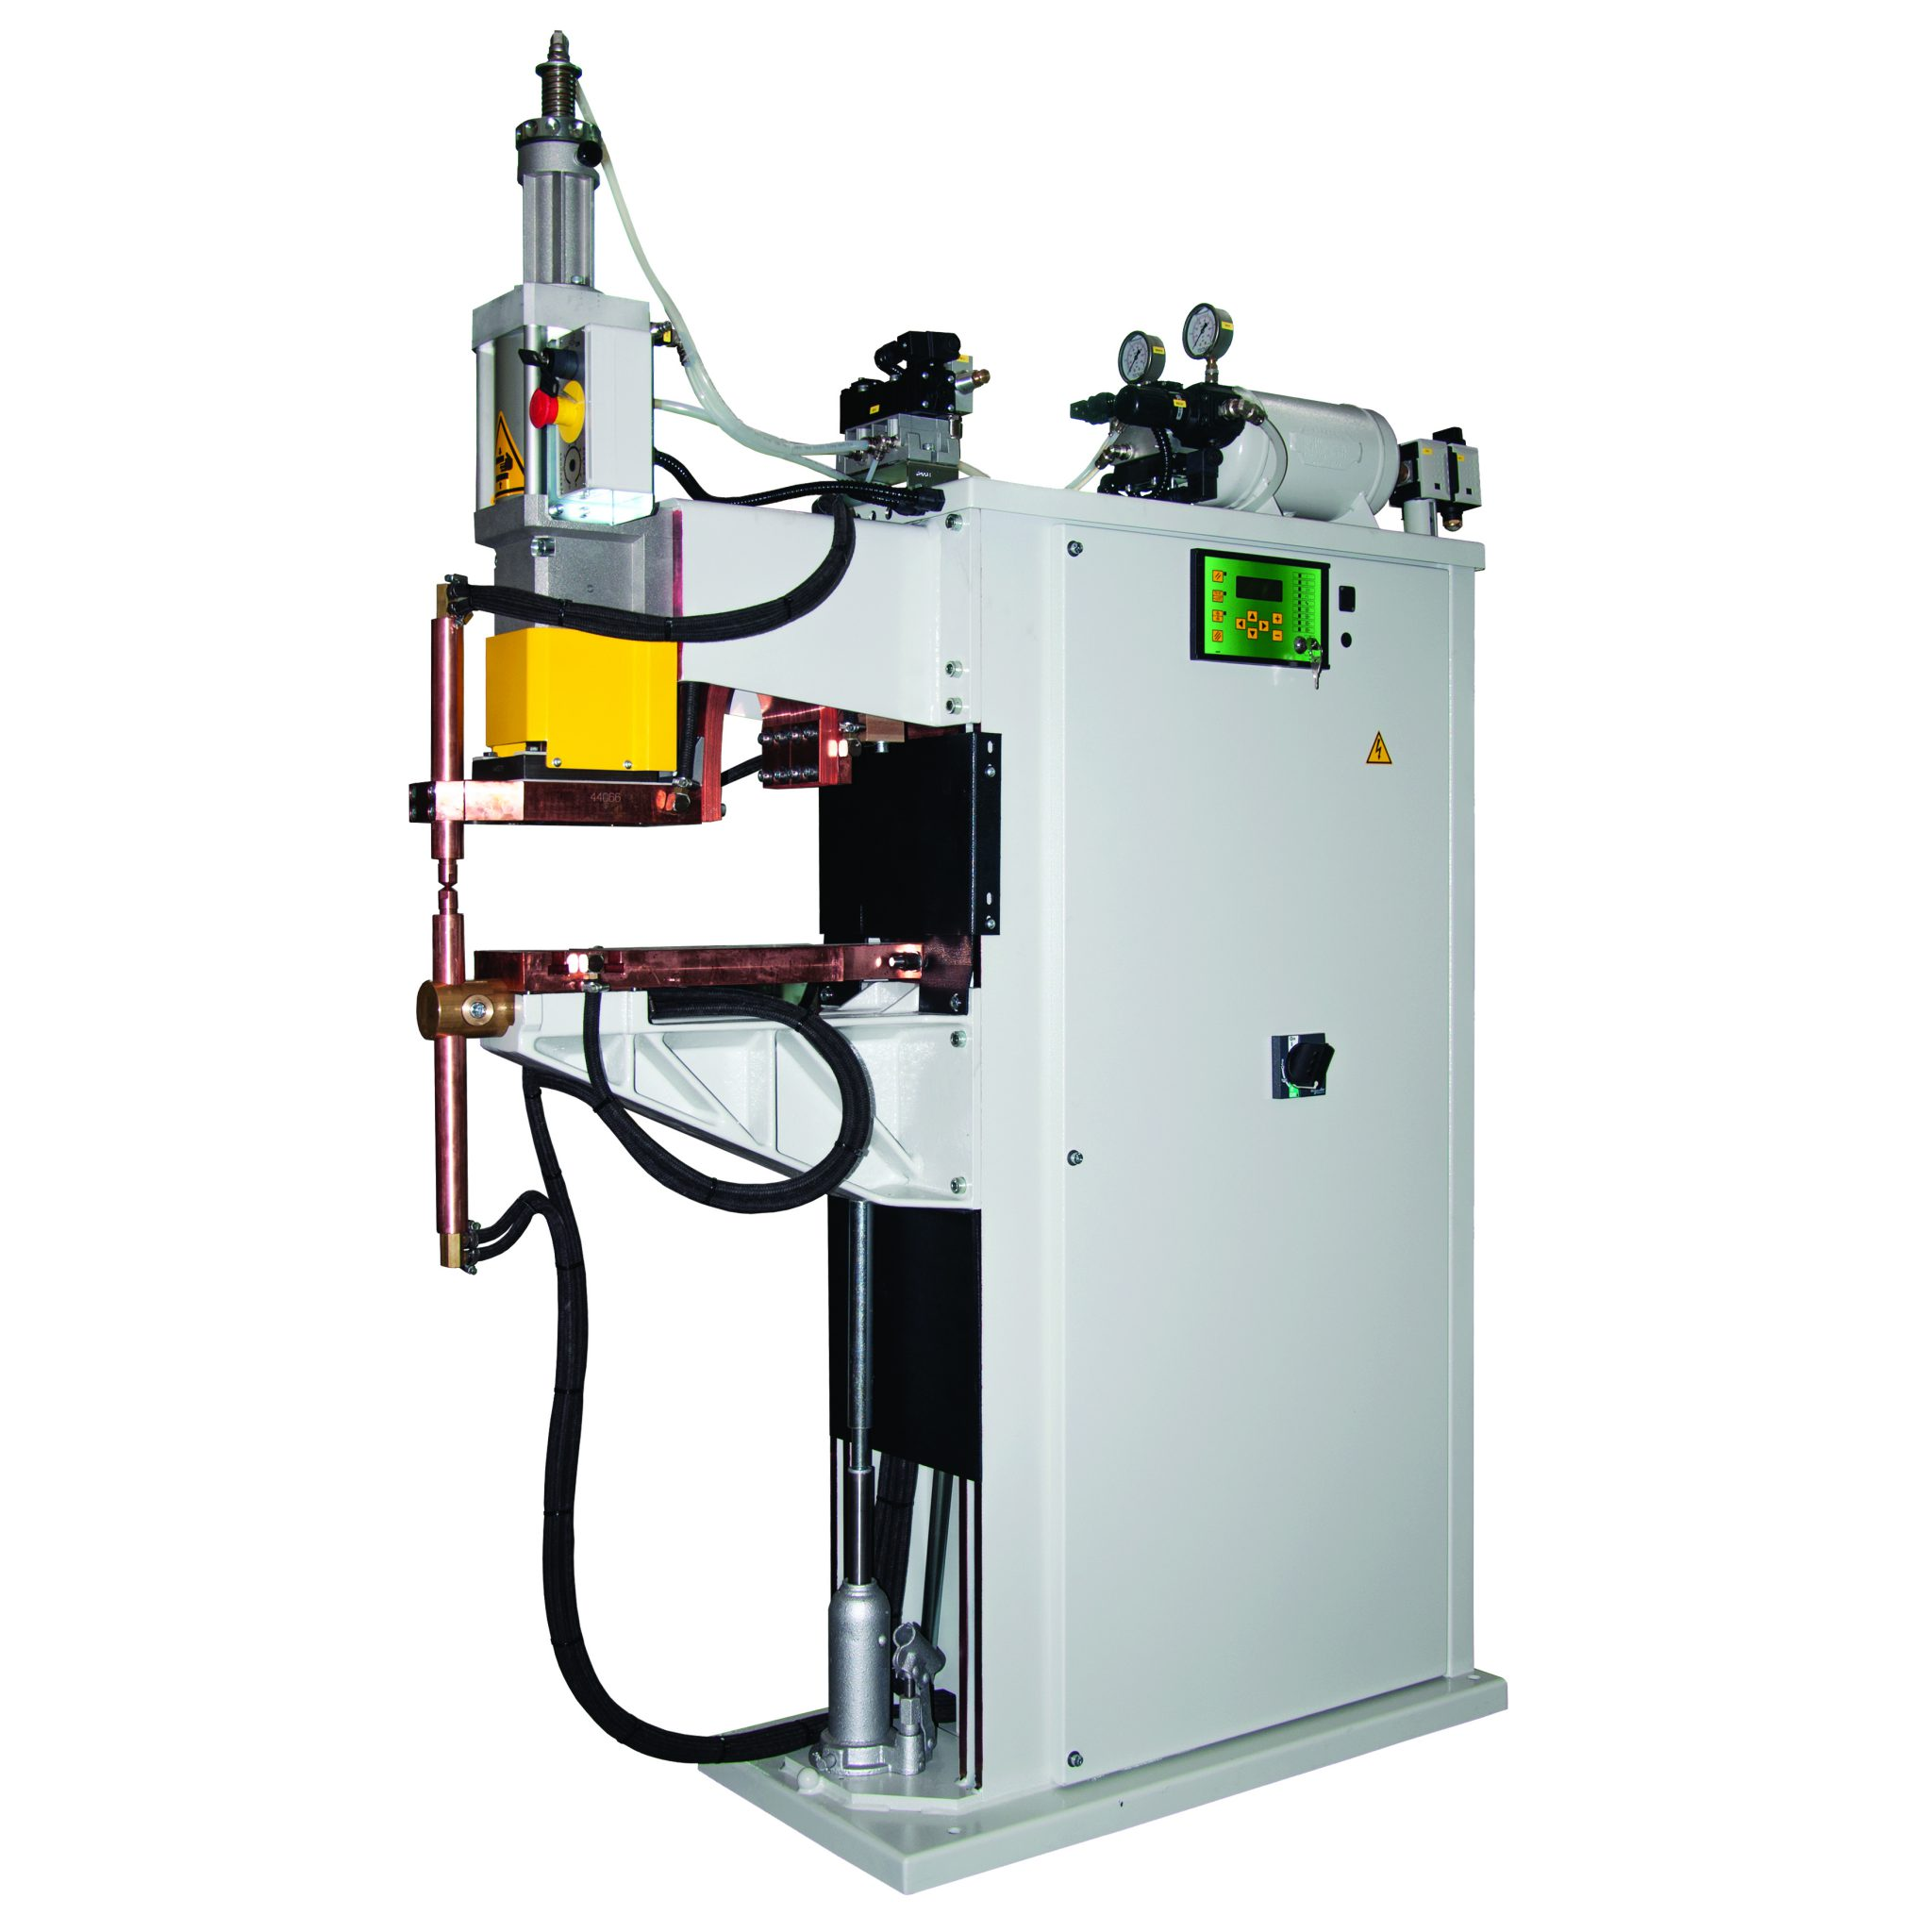 T J Snow Resistance Welding Machinery Supplies Service On Gun Or Cables Welder And Welders Transformer Advantages Of Mfdc